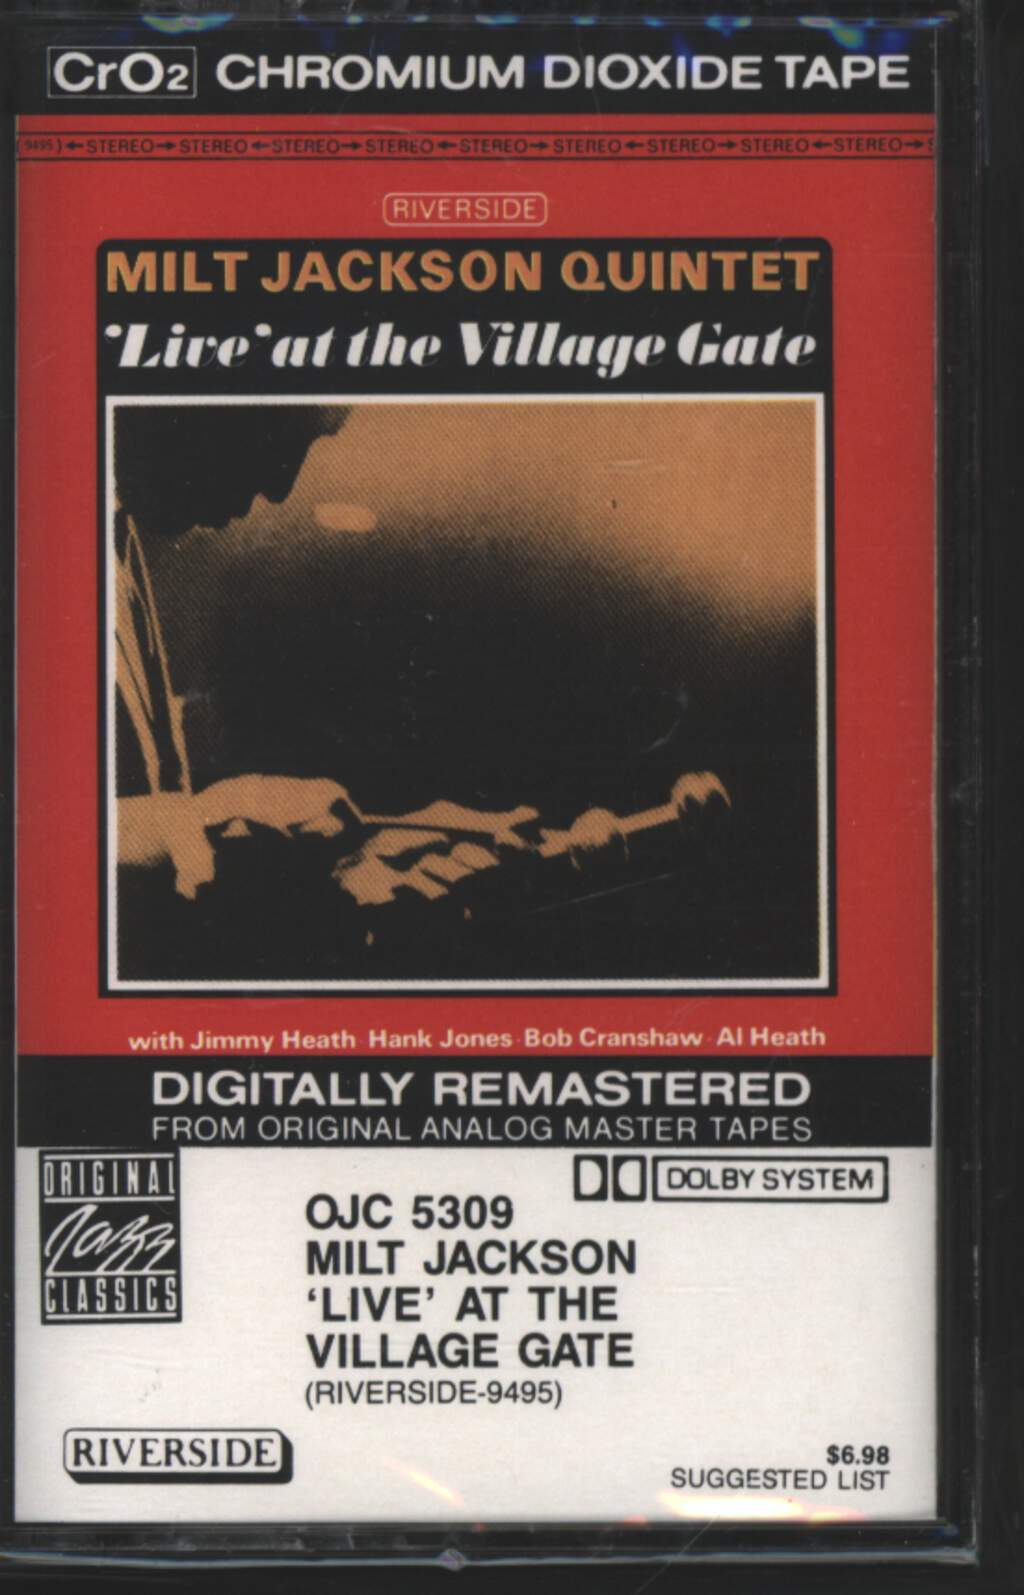 Milt Jackson Quintet: 'Live' At The Village Gate, Tape